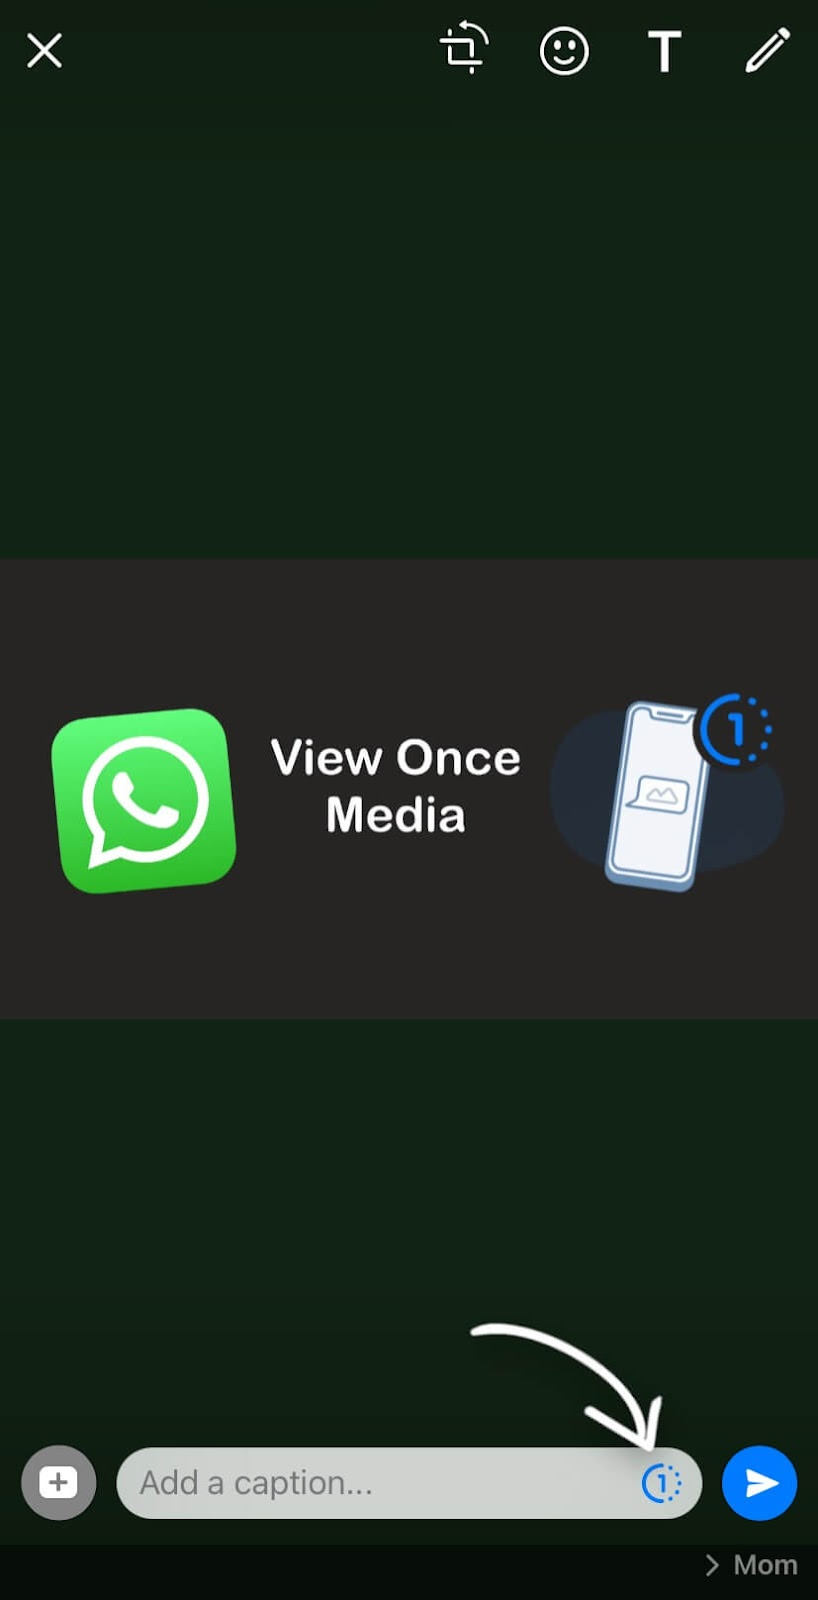 Send view once media on WhatsApp for iPhone